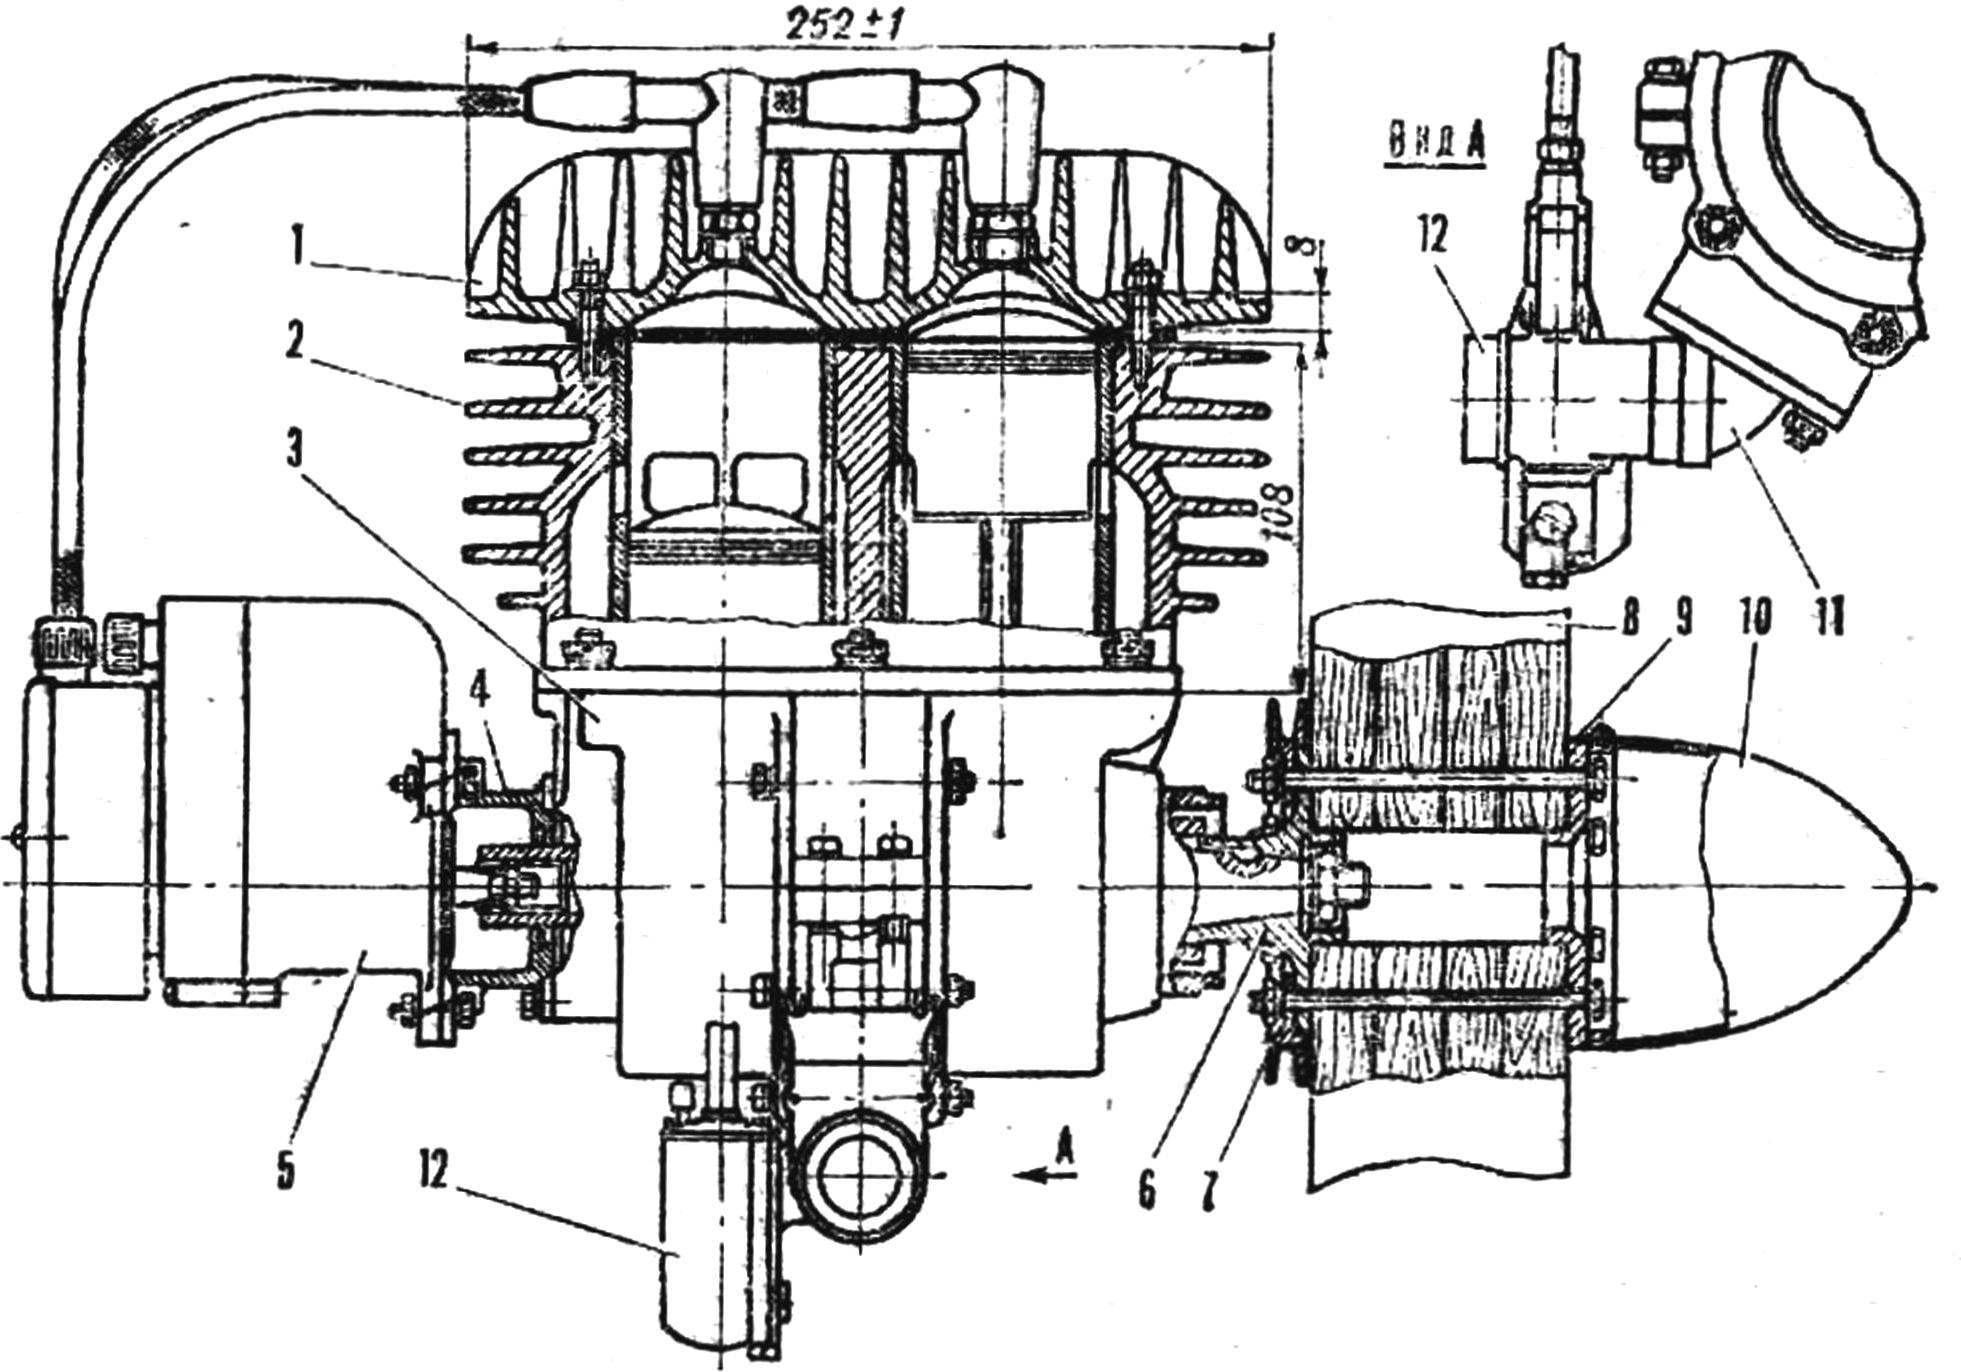 Fig. 1. The layout engine